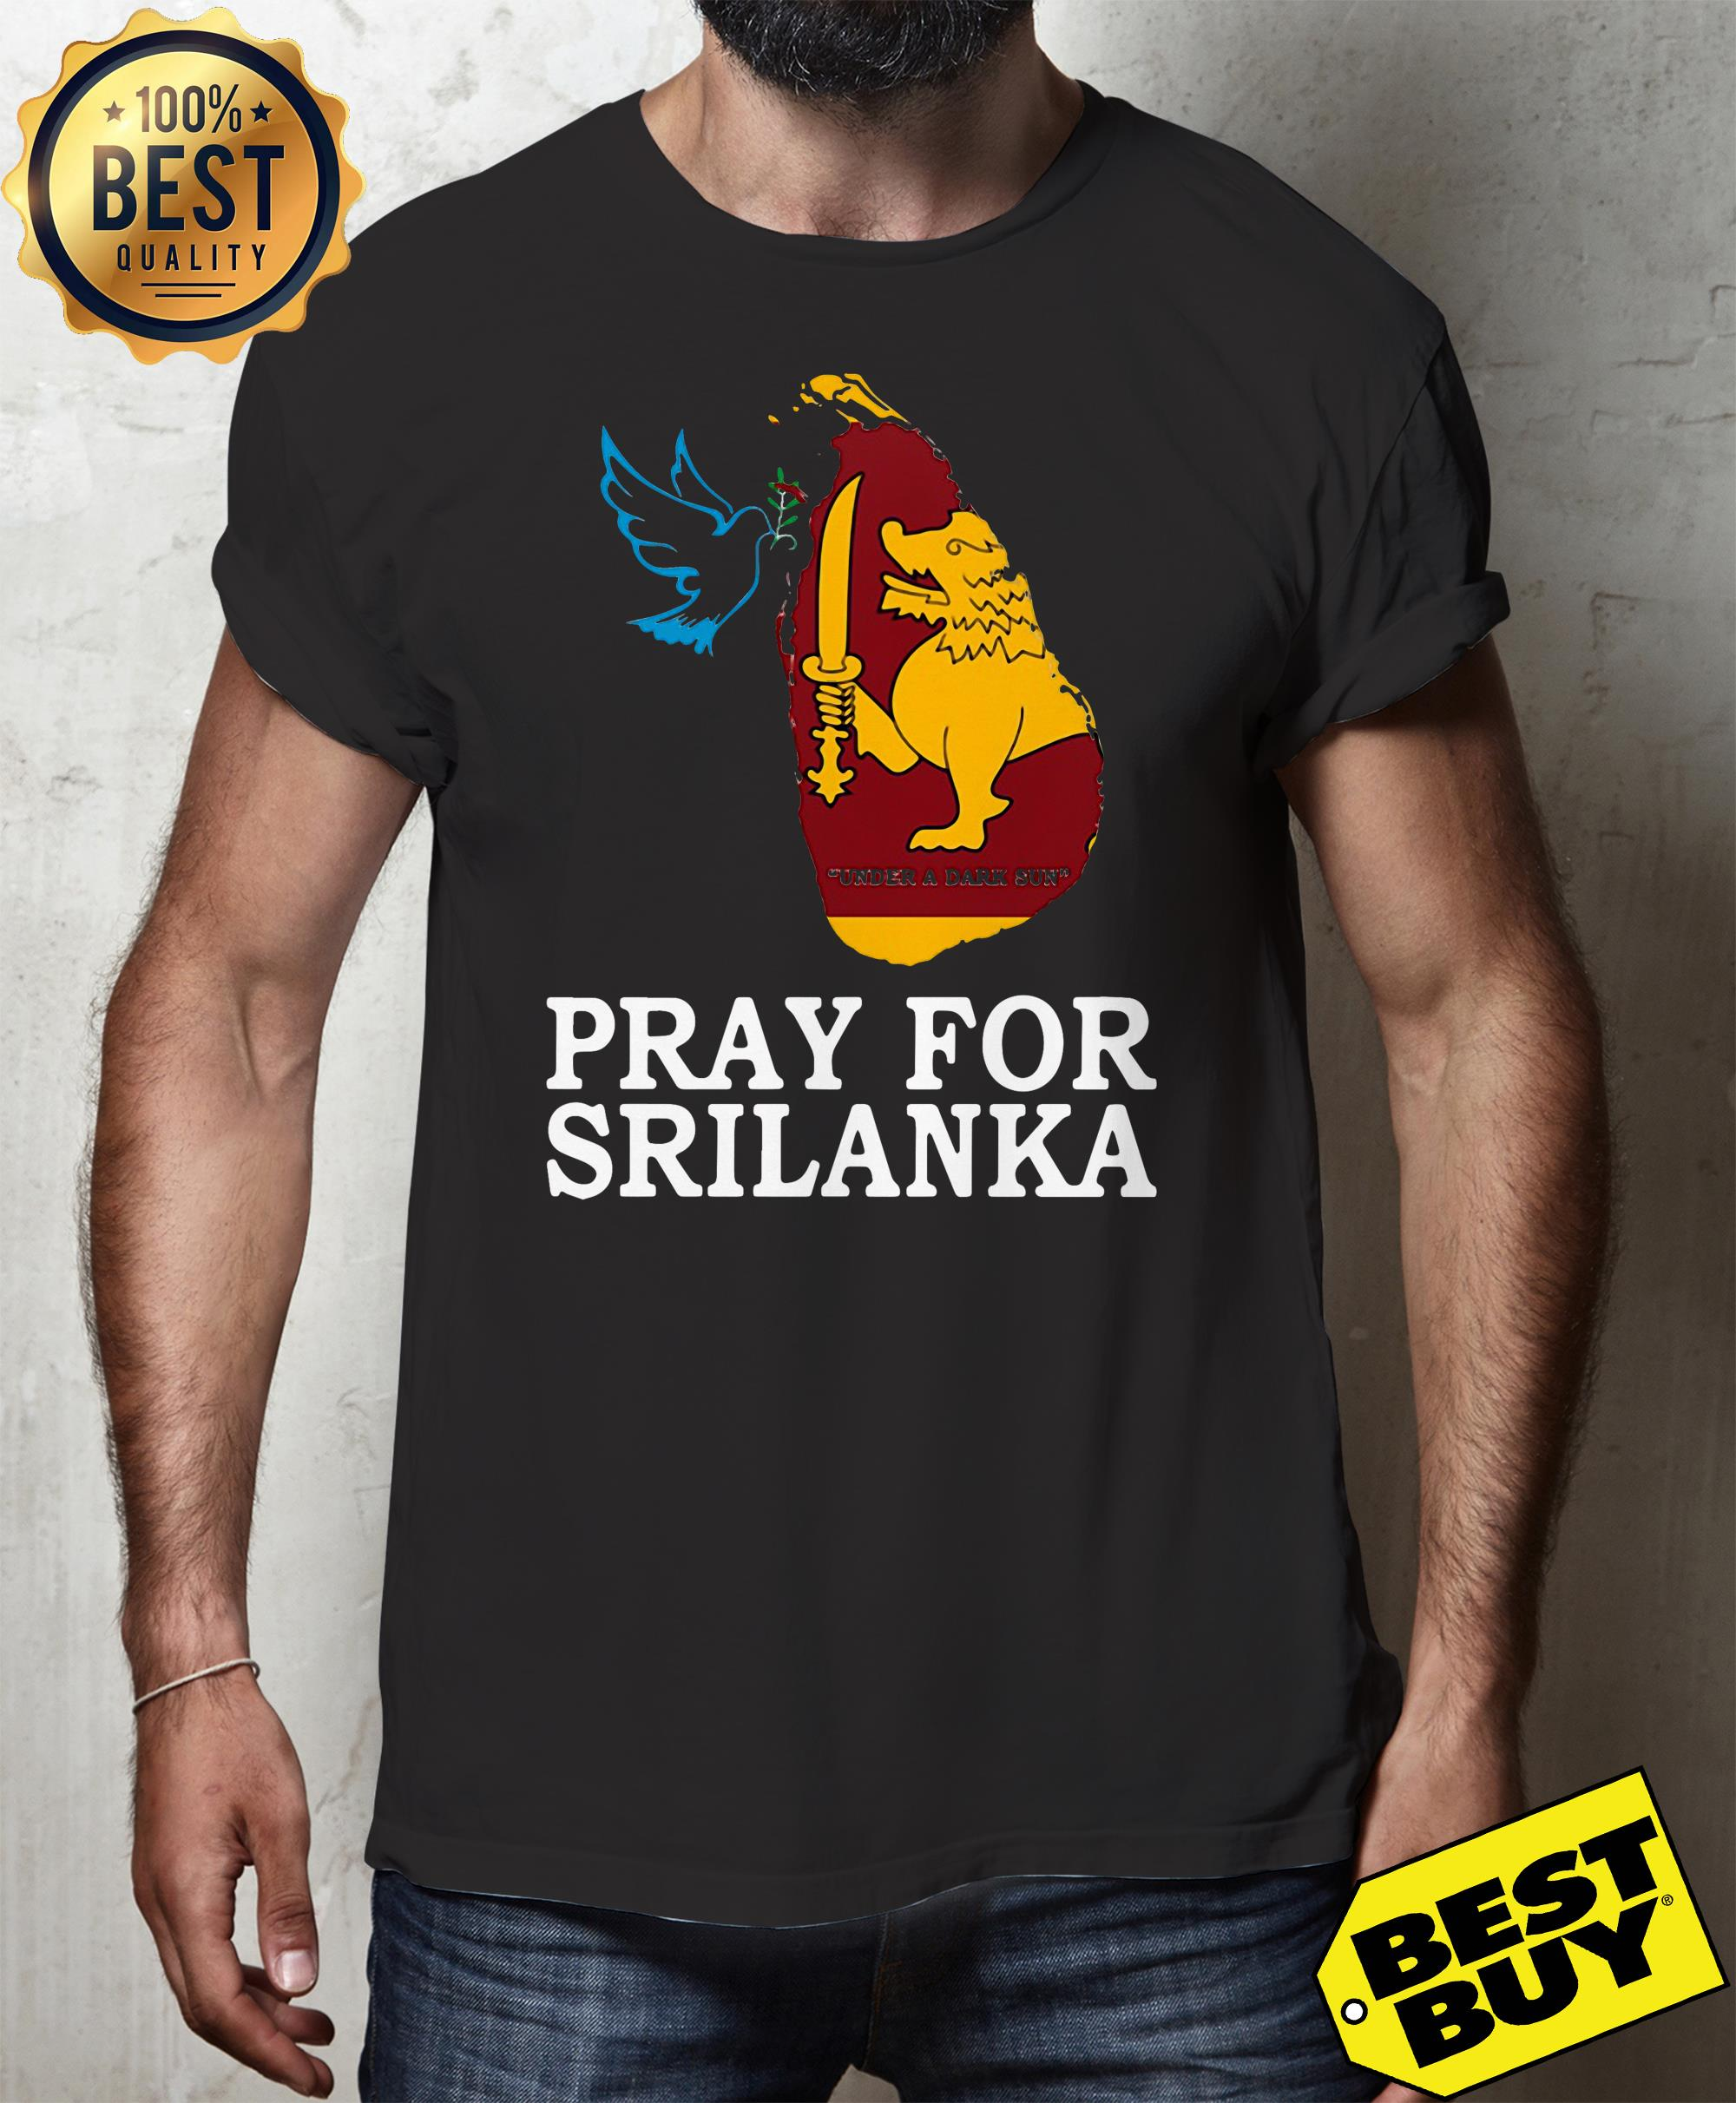 Pray for Sri Lanka shirt